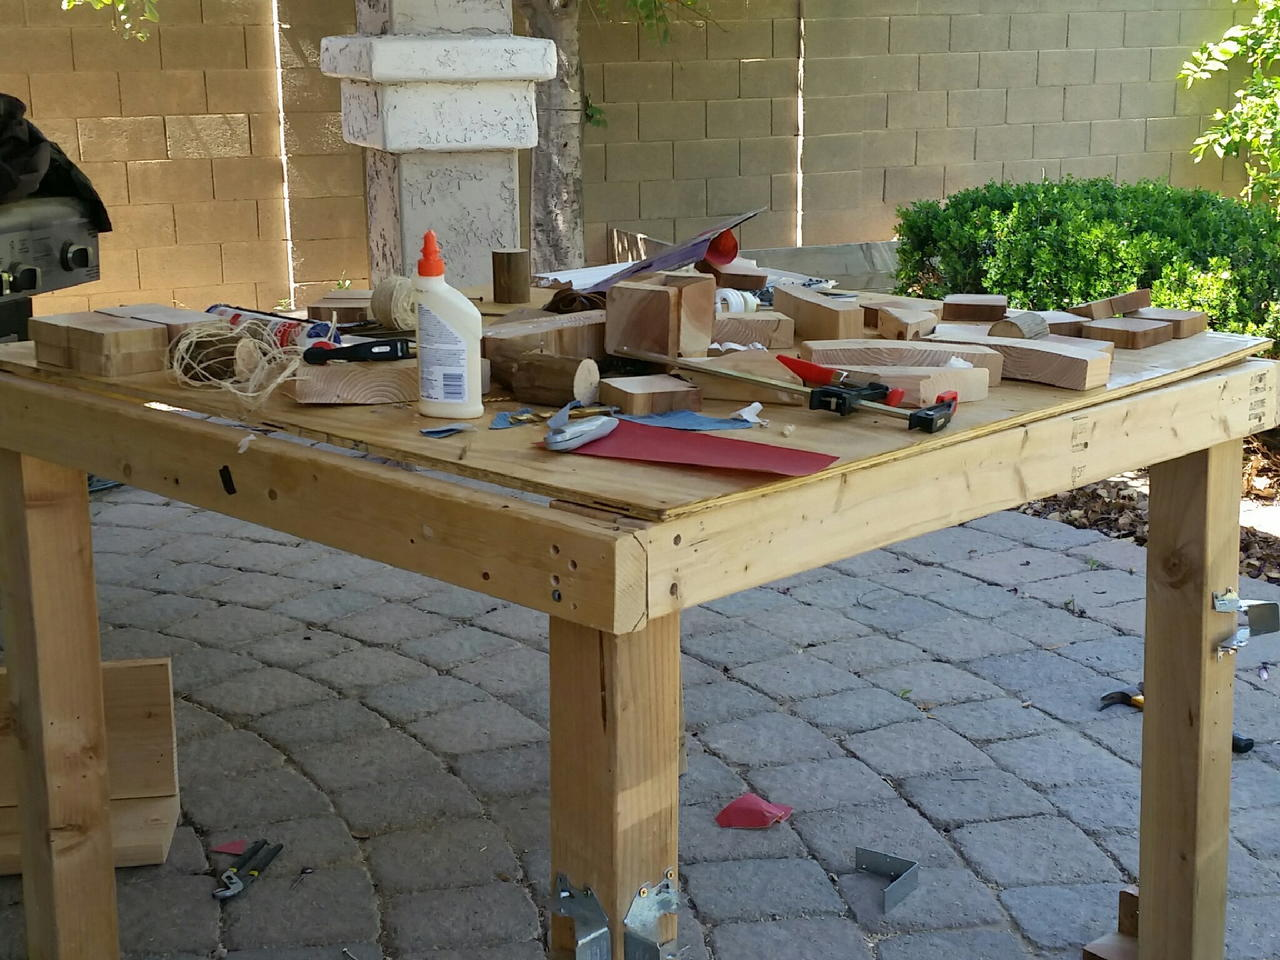 Surprising 10 Tutorials For Plywood Work Bench How To Make Woodwork Caraccident5 Cool Chair Designs And Ideas Caraccident5Info